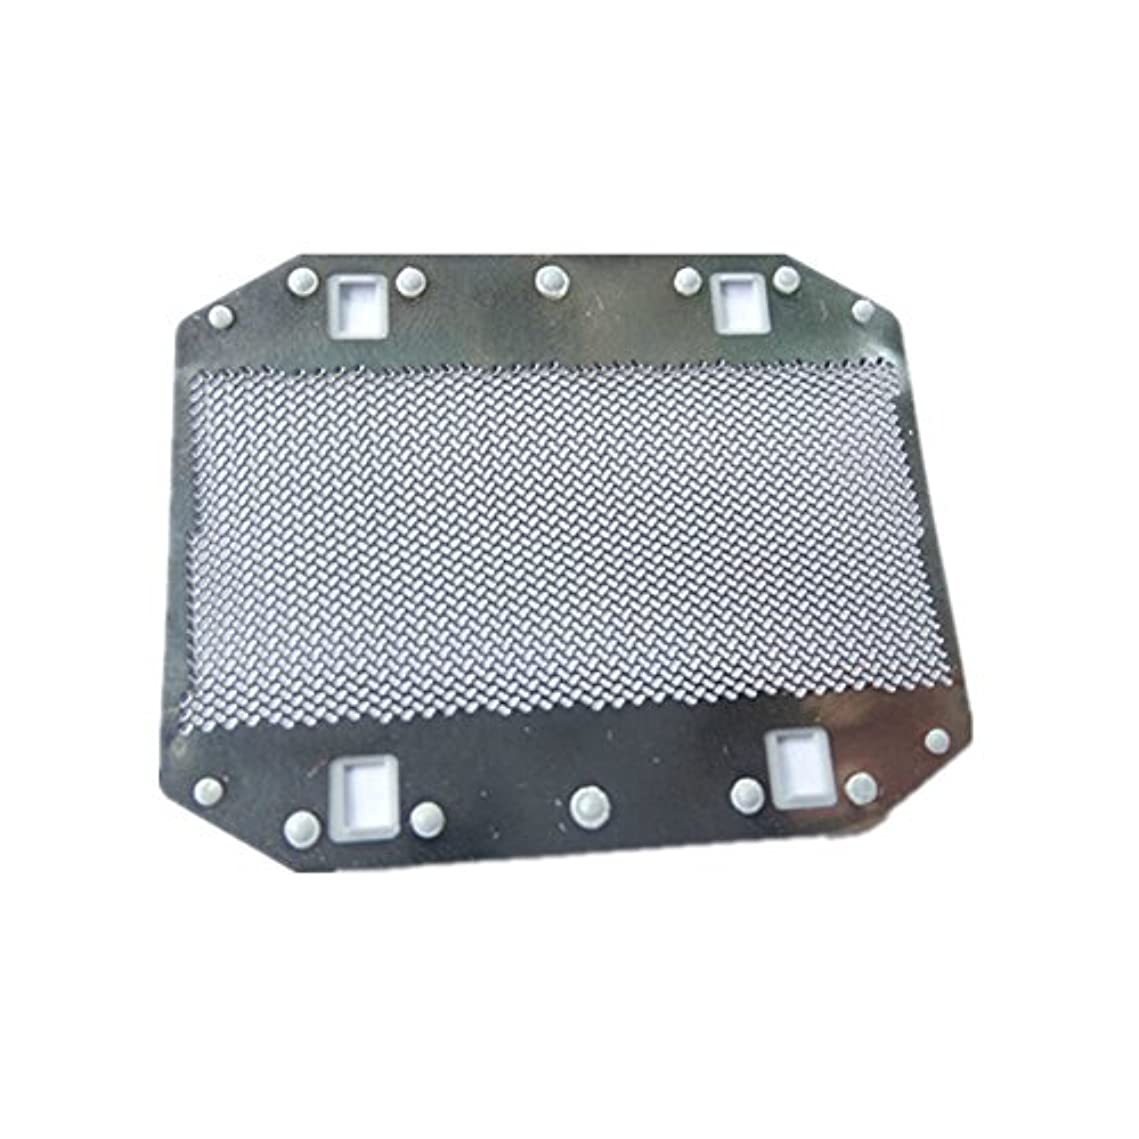 分類抽象化新聞HZjundasi Replacement Outer ホイル for Panasonic ES3750/3760/RP40/815/3050 ES9943